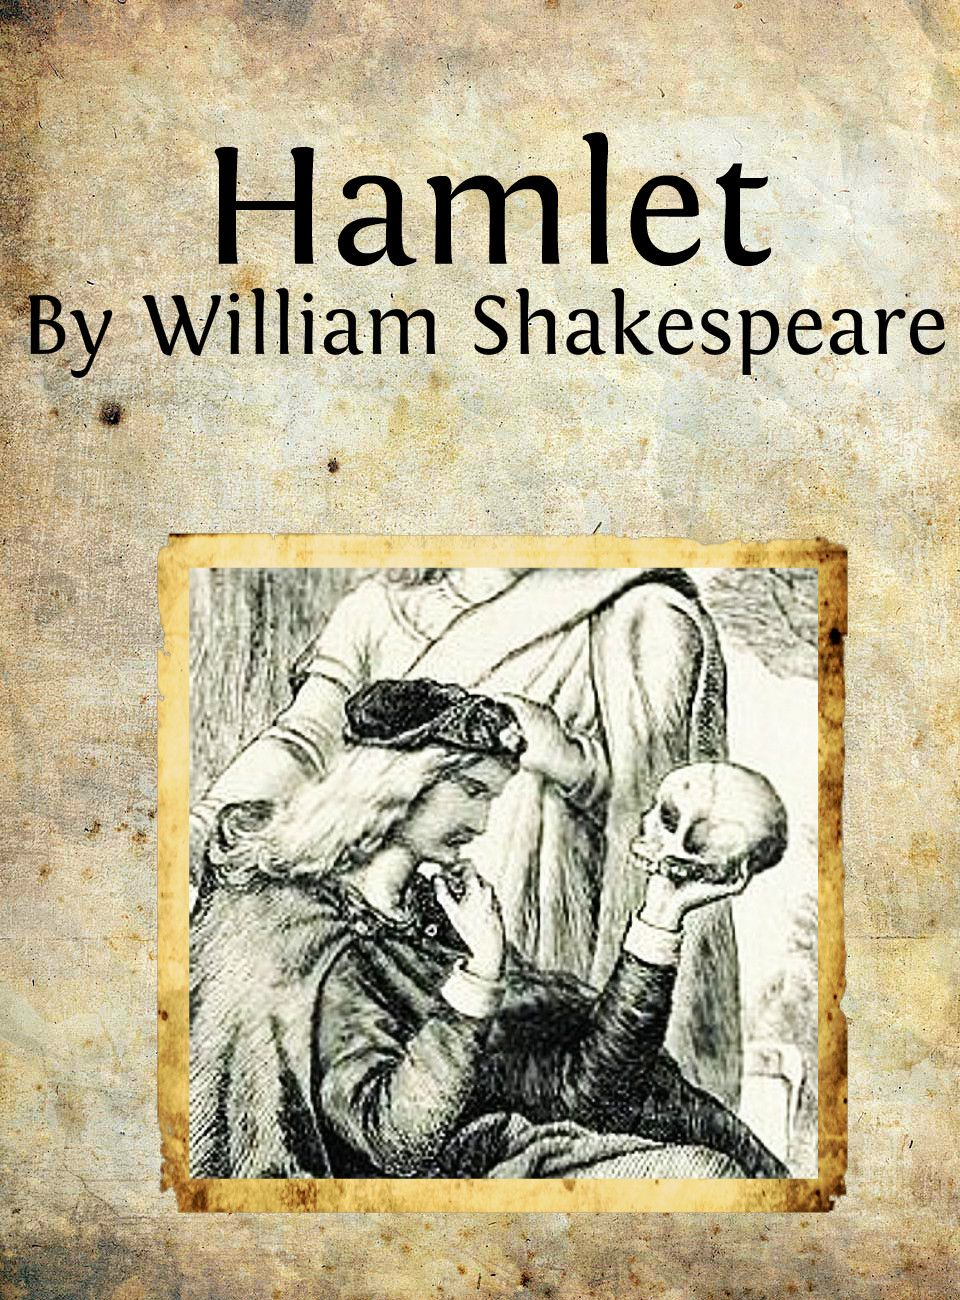 the issue of hamlets madness in hamlet by william shakespeare Harold bloom interprets hamlet this article focuses on the interpretation of william shakespeare's hamlet by vol 8 issue 3, p327 hamlet's exclusion.